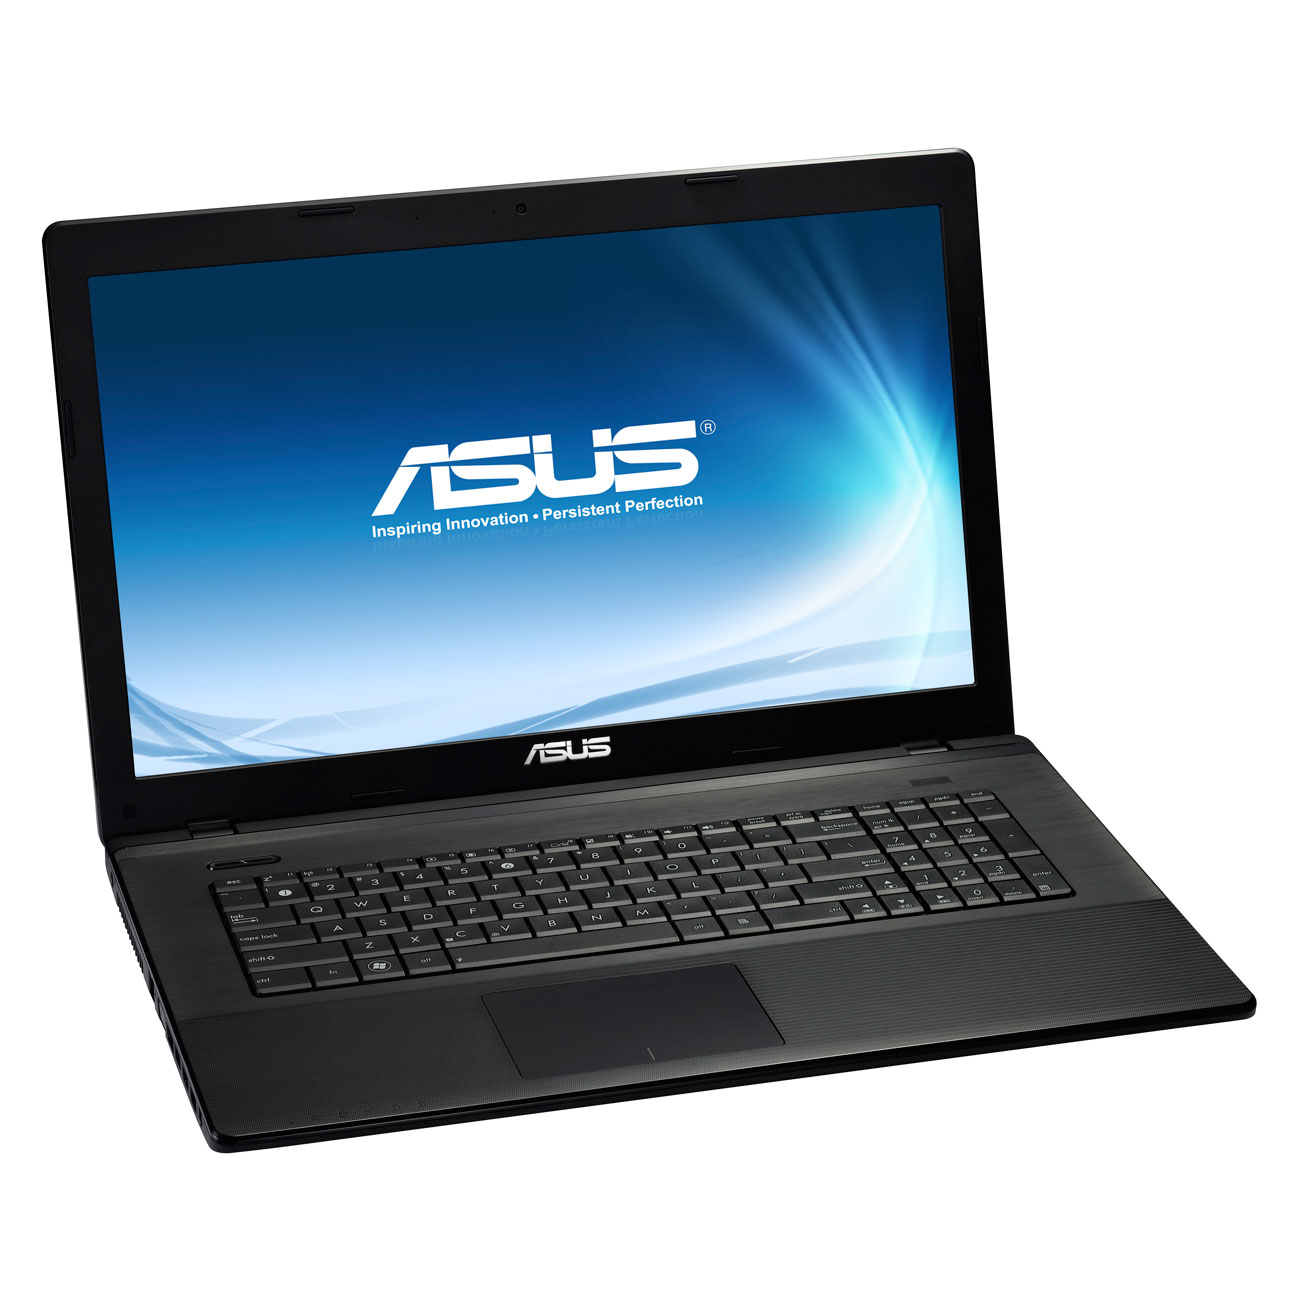 asus x75vd ty082v pc portable asus sur. Black Bedroom Furniture Sets. Home Design Ideas